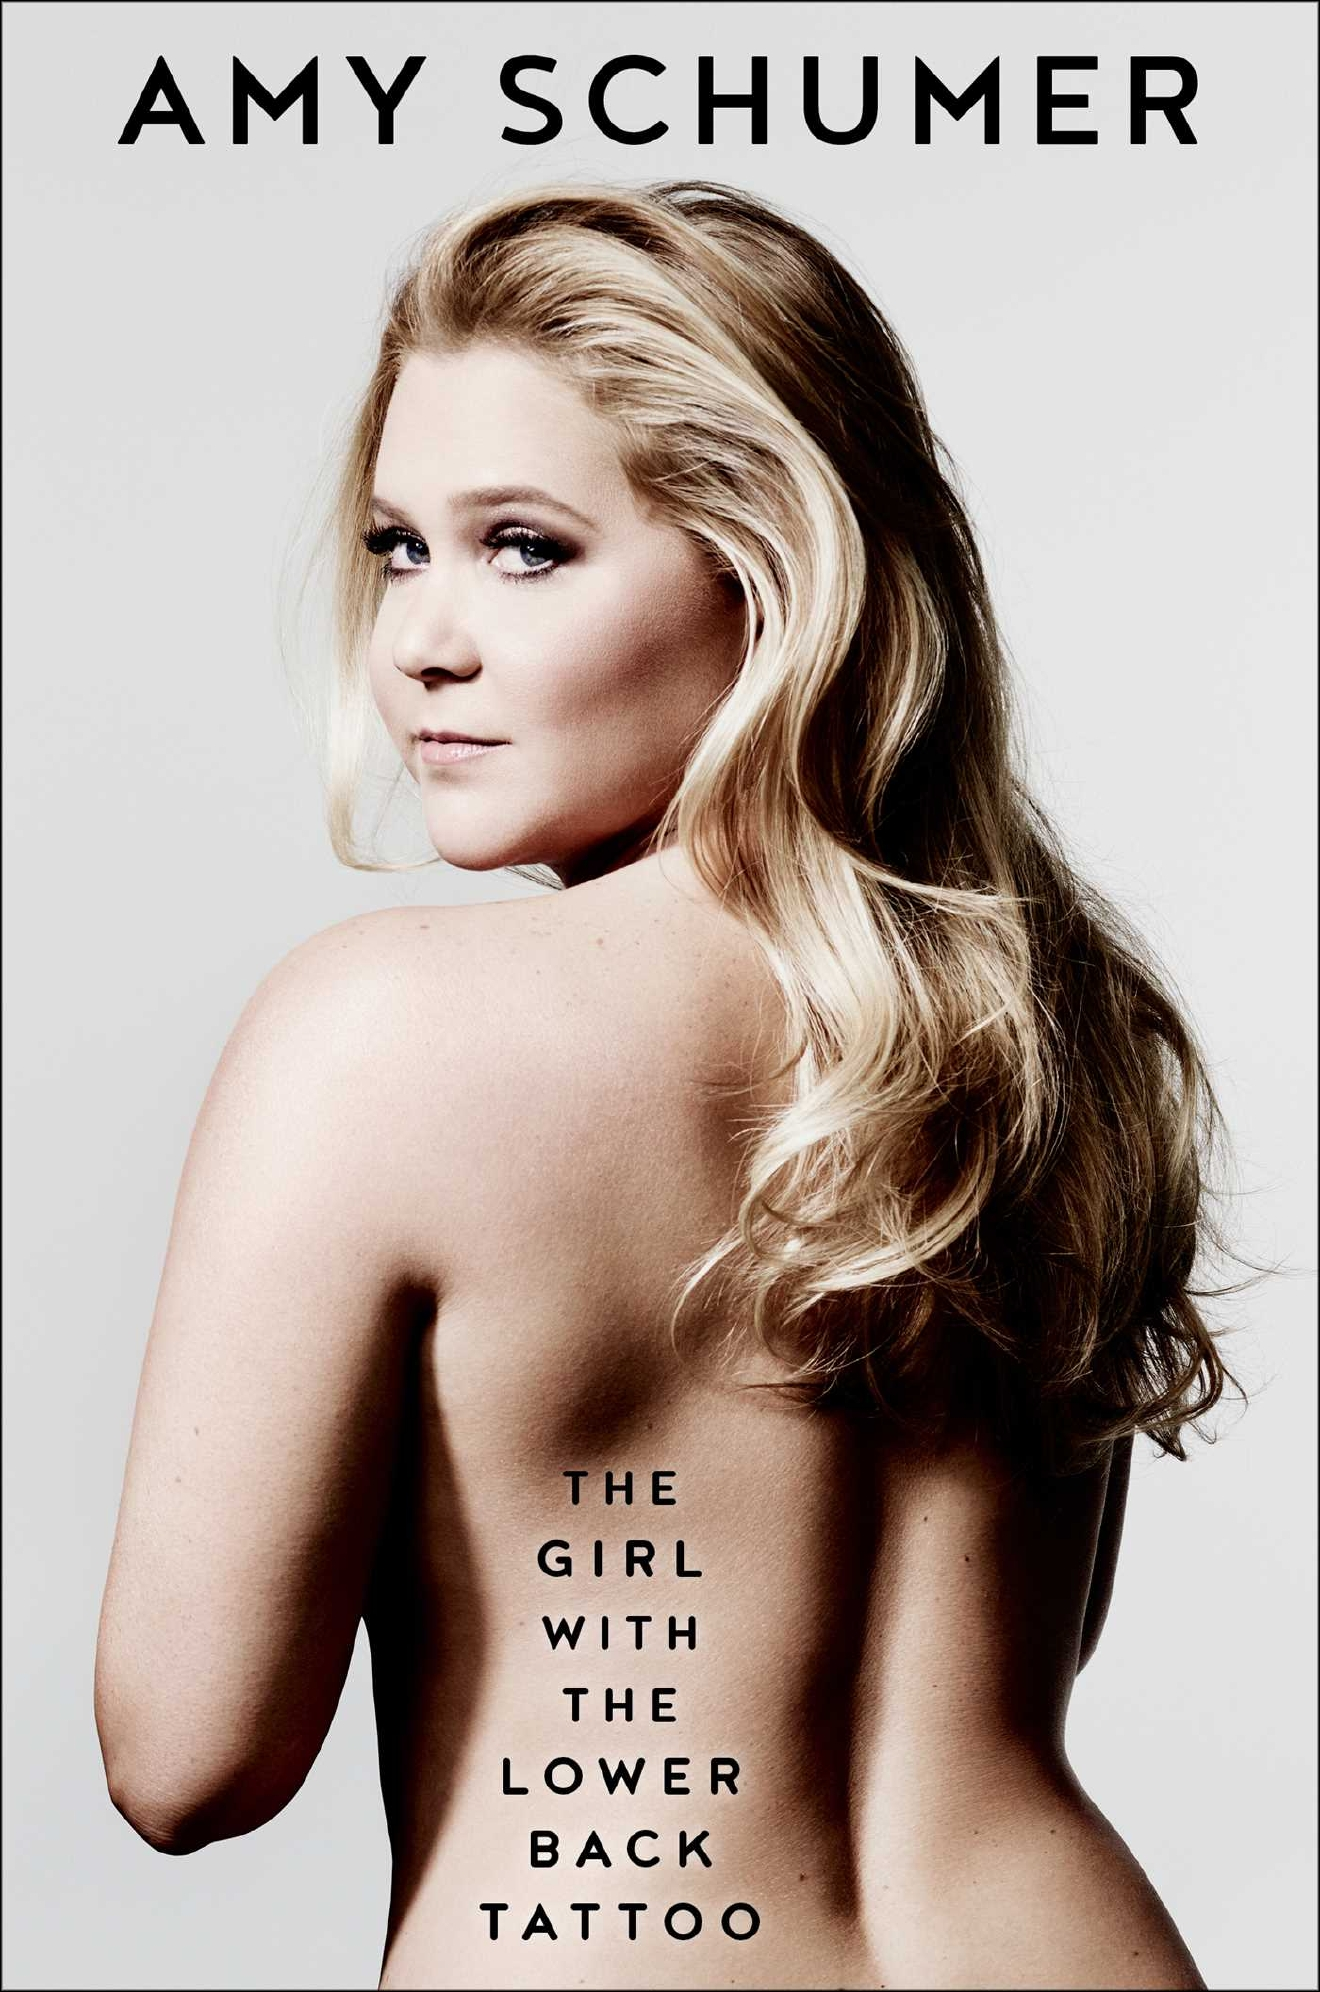 Book: The Girl with the Lower Back Tattoo / Author: Amy Schumer / Publisher: Simon & Schuster, 2016 // Image courtesy of Simon & Schuster // Article Published: 1.9.17